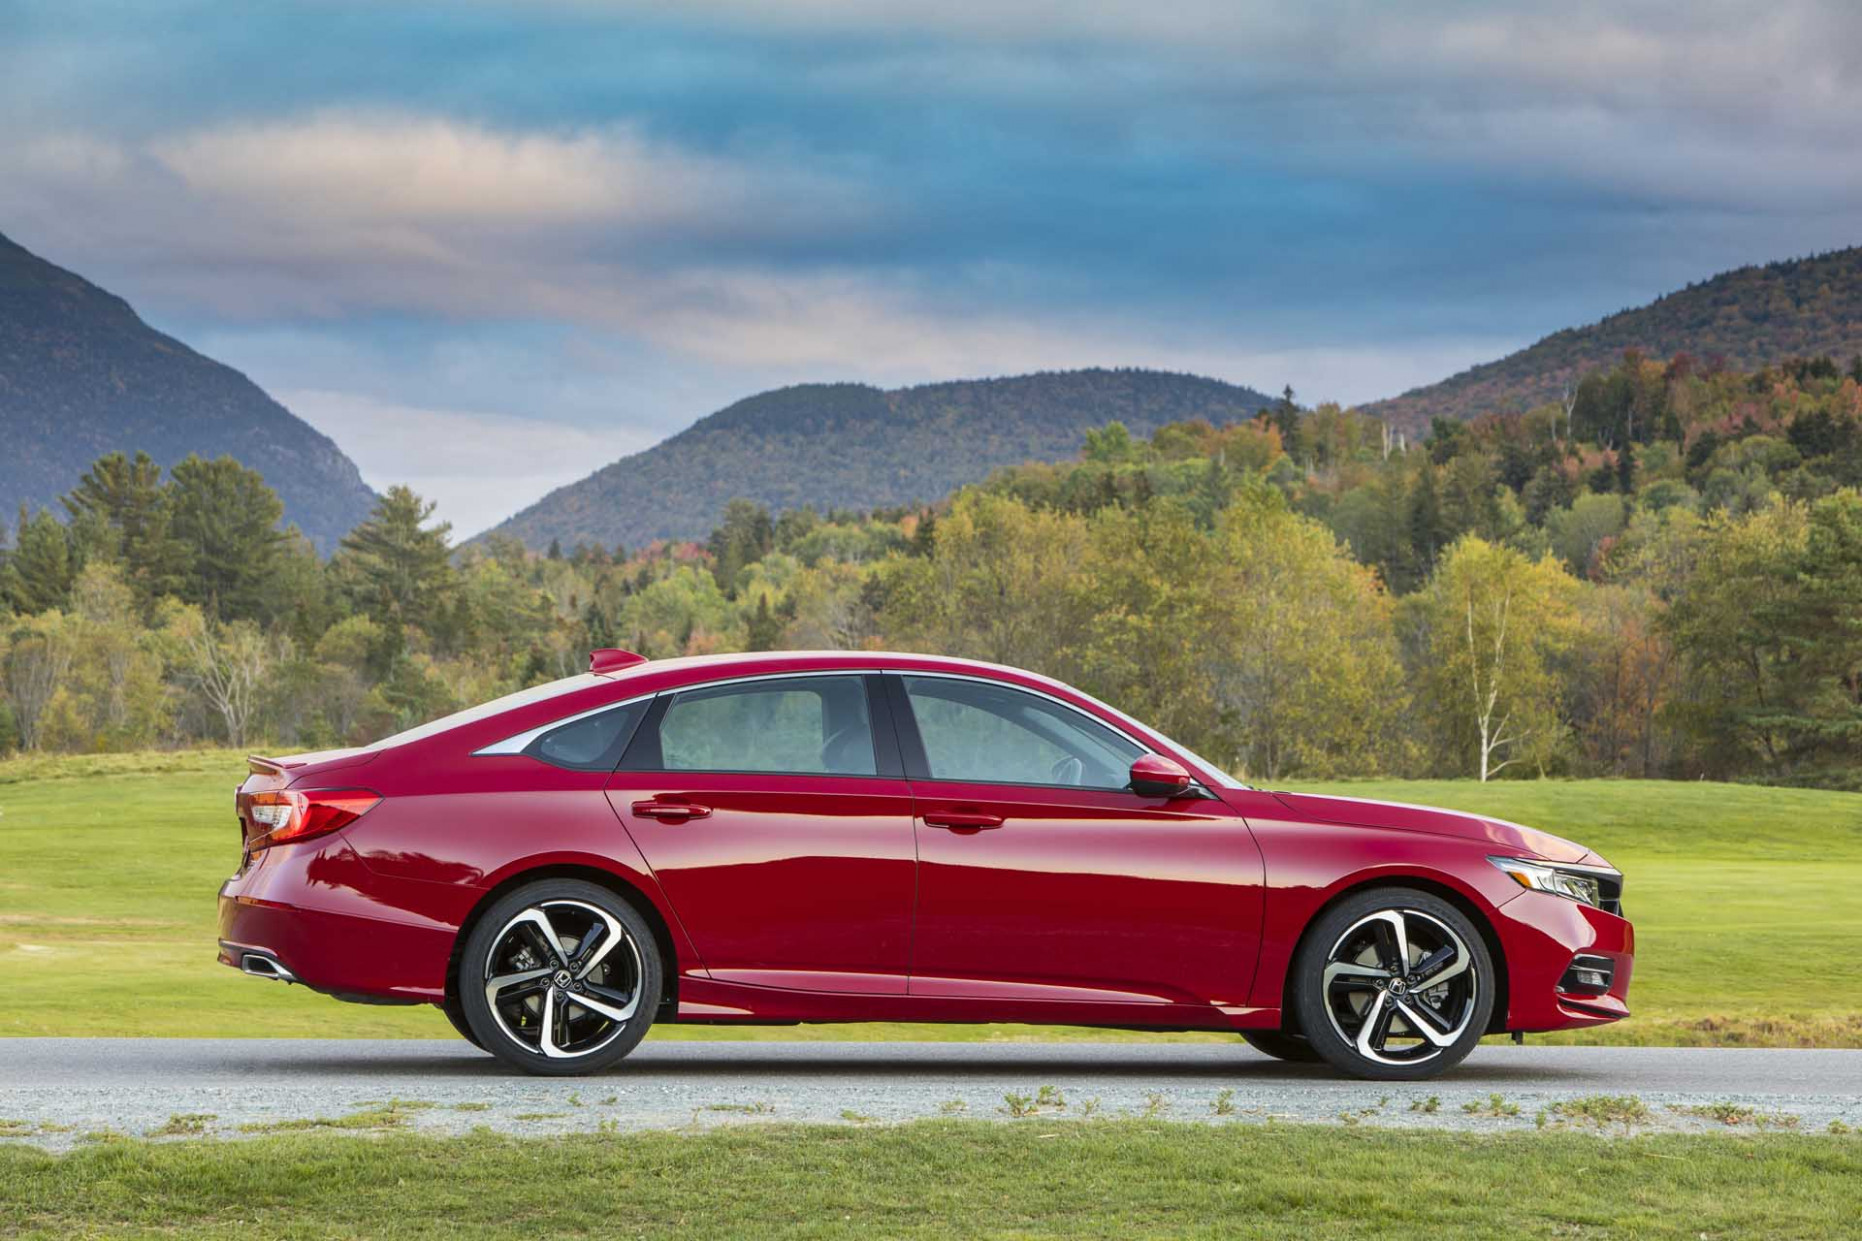 8 Honda Accord Review, Ratings, Specs, Prices, and Photos - The ...